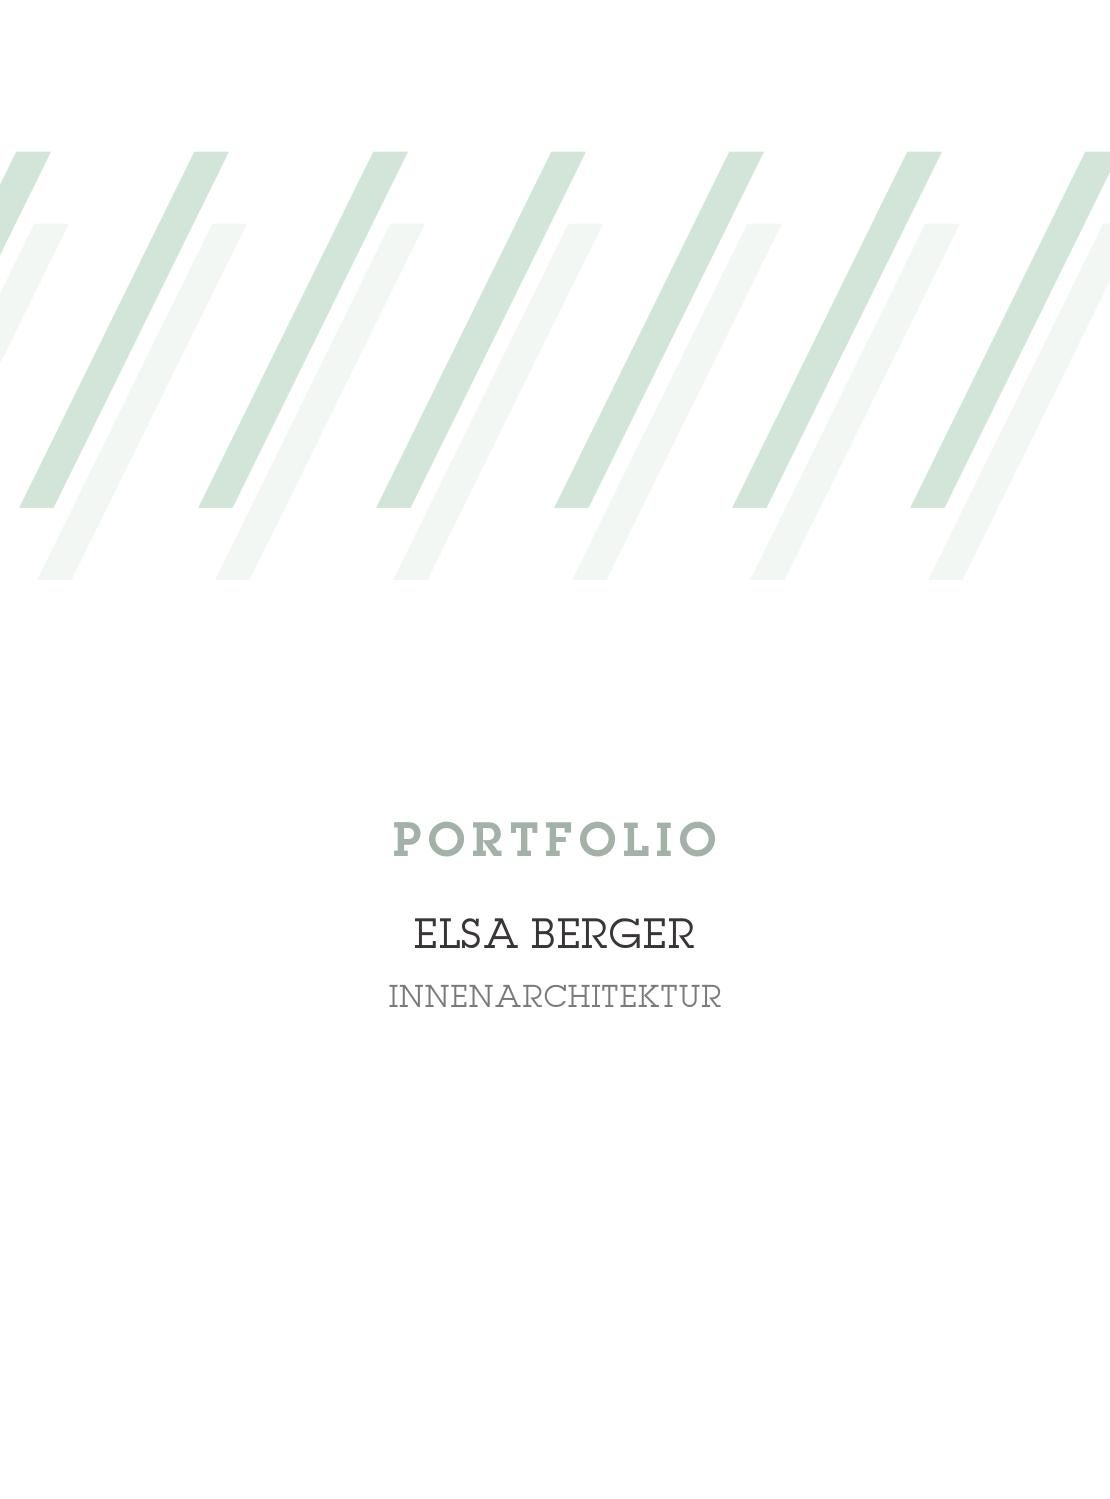 Portfolio elsa berger innenarchitektur by elsa berger for Innenarchitektur portfolio